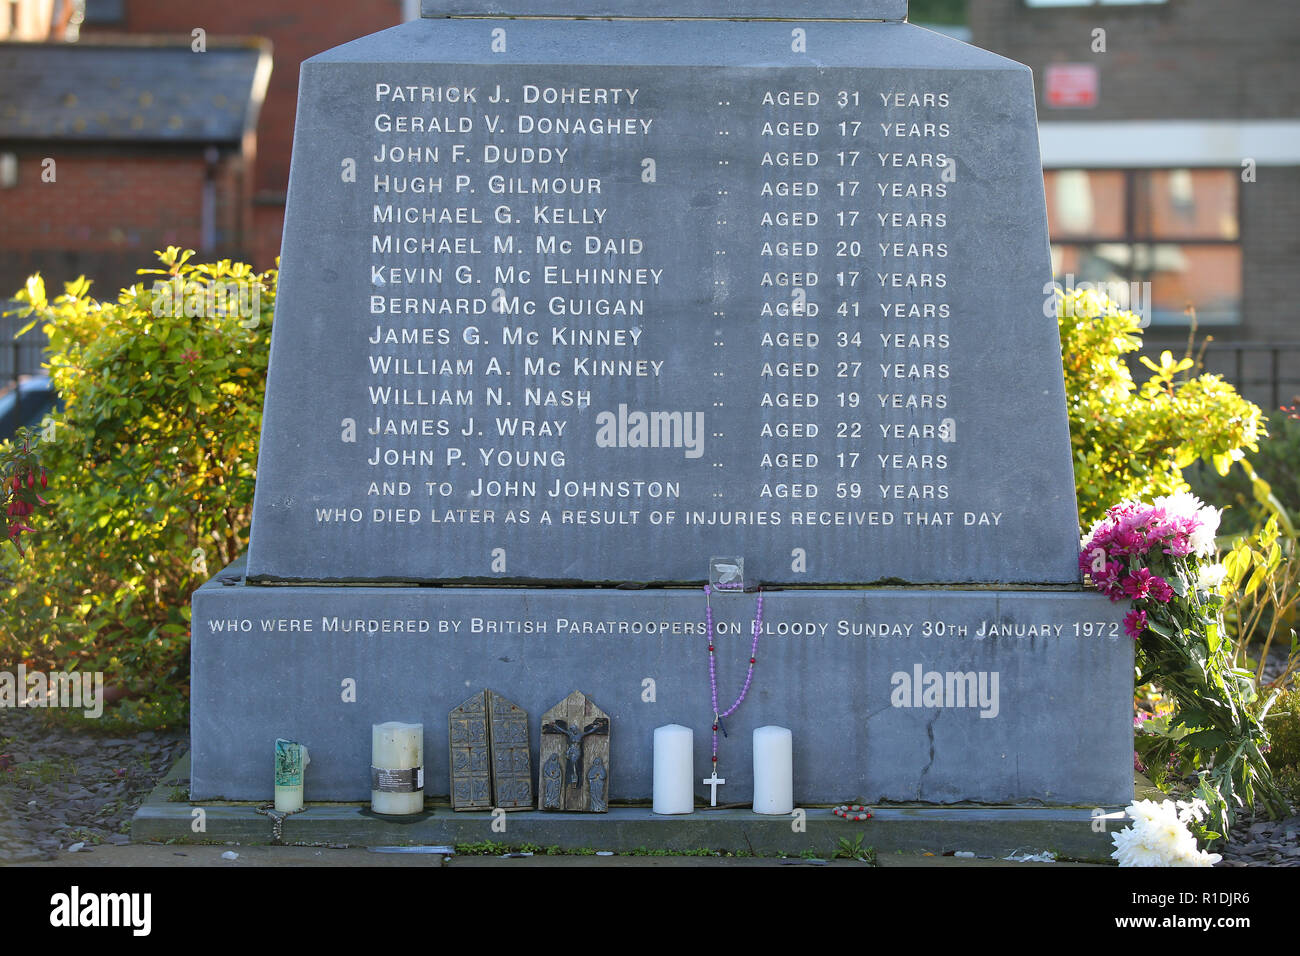 Londonderry, UK. 08th Nov, 2018. A memorial commemorates the victims of Bloody Sunday in 1972 when British soldiers shot 13 demonstrators and injured 13 others. Some of the worst acts of violence during the riots took place in the area. Today Derry is a tourist attraction because of the political murals. Credit: Jonathan Porter/PressEye/dpa/Alamy Live News - Stock Image